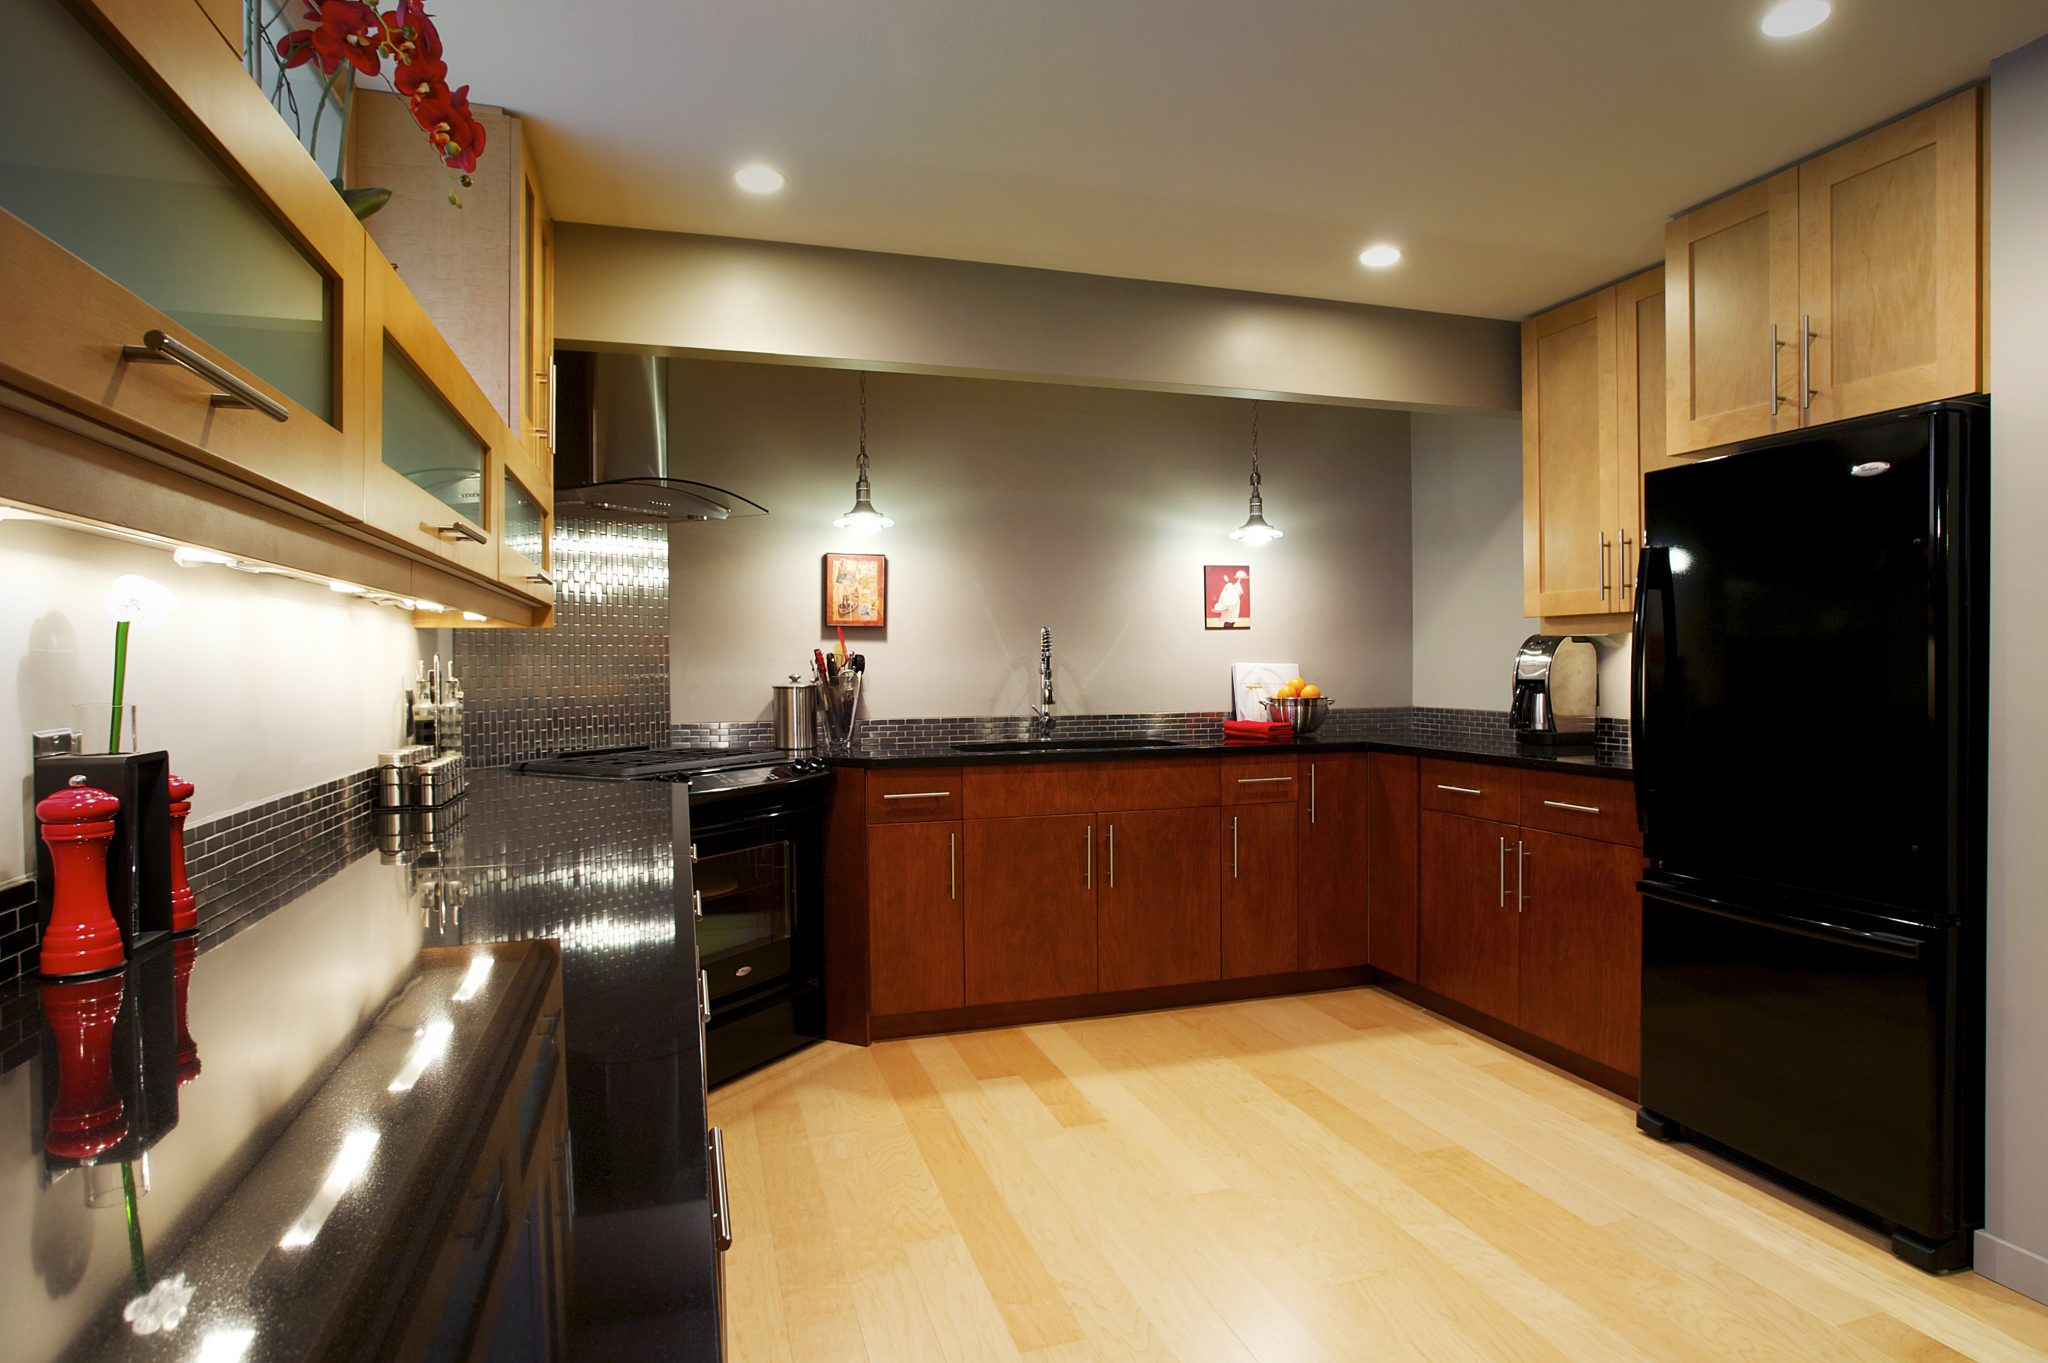 Interior design kelowna kitchen suite creative touch Creative interior design